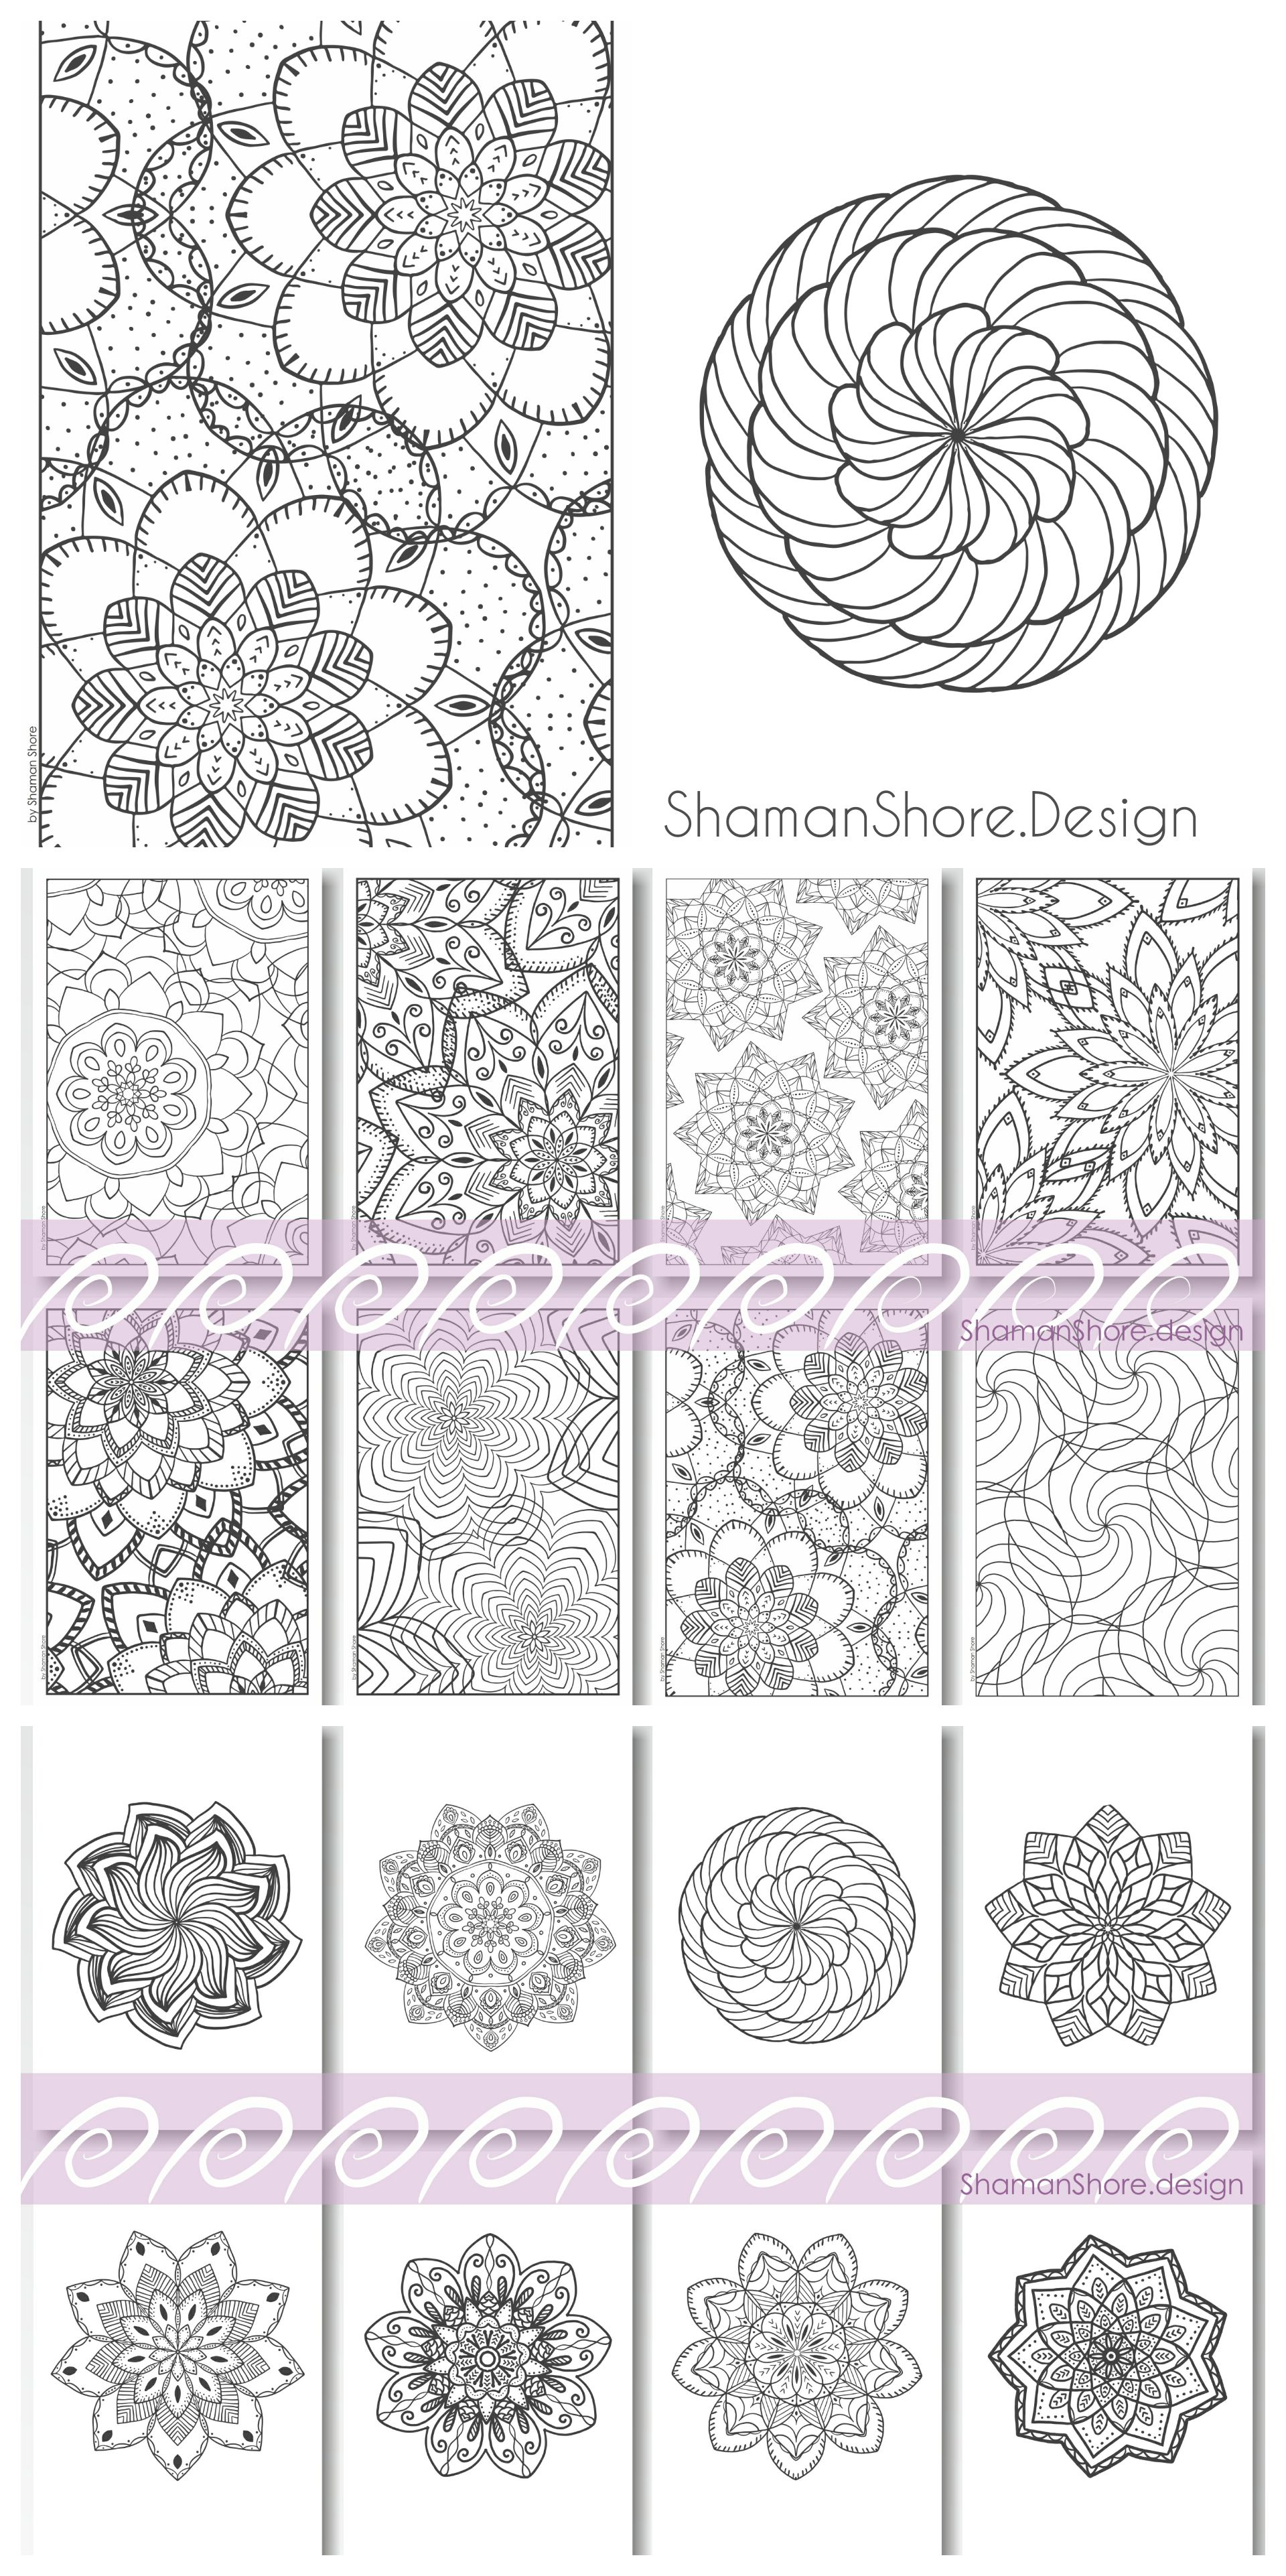 Mandala Coloring Pages For Grown Ups Printable Advanced Book On Etsy Digital Download Difficult Adults Anti Stress